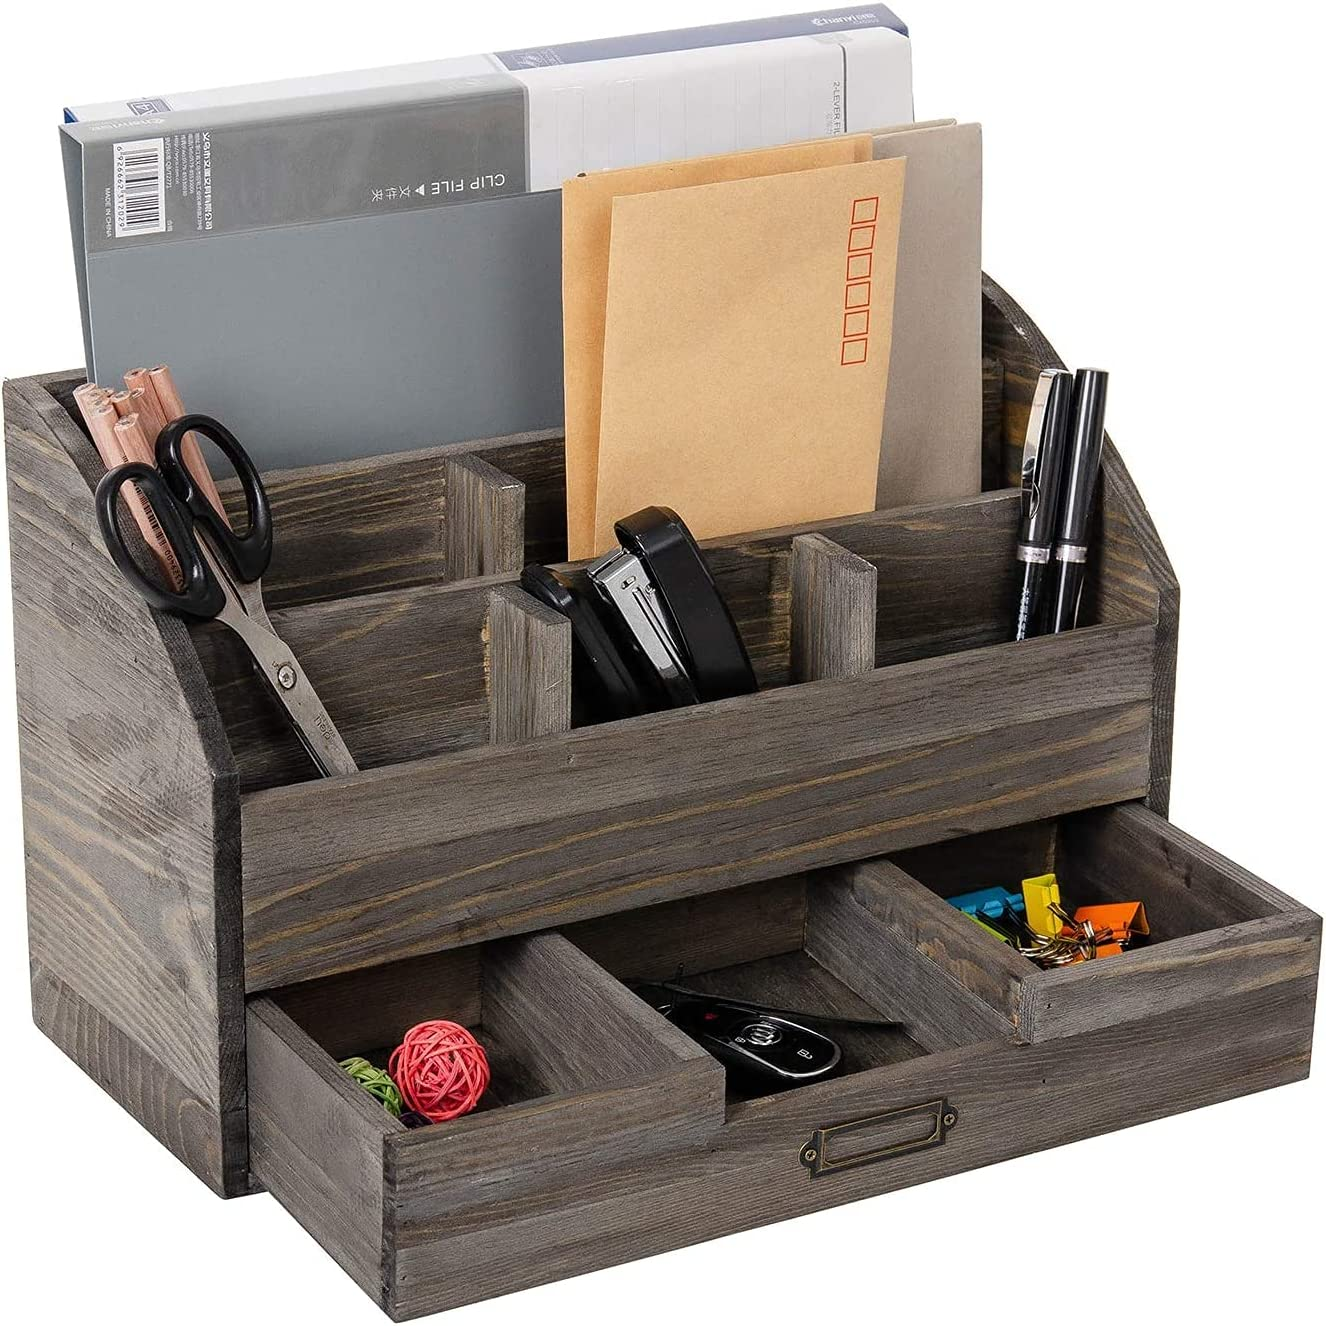 Rustic Wooden Office Desk Organizer 5 Compartment with 2 Drawer &Counter Home Desk Tabletop Desktop Mail Rack ,Storage for Pens Notebooks Folders Pencils and Office Supplies Jewelry storage box (Rock Grey)